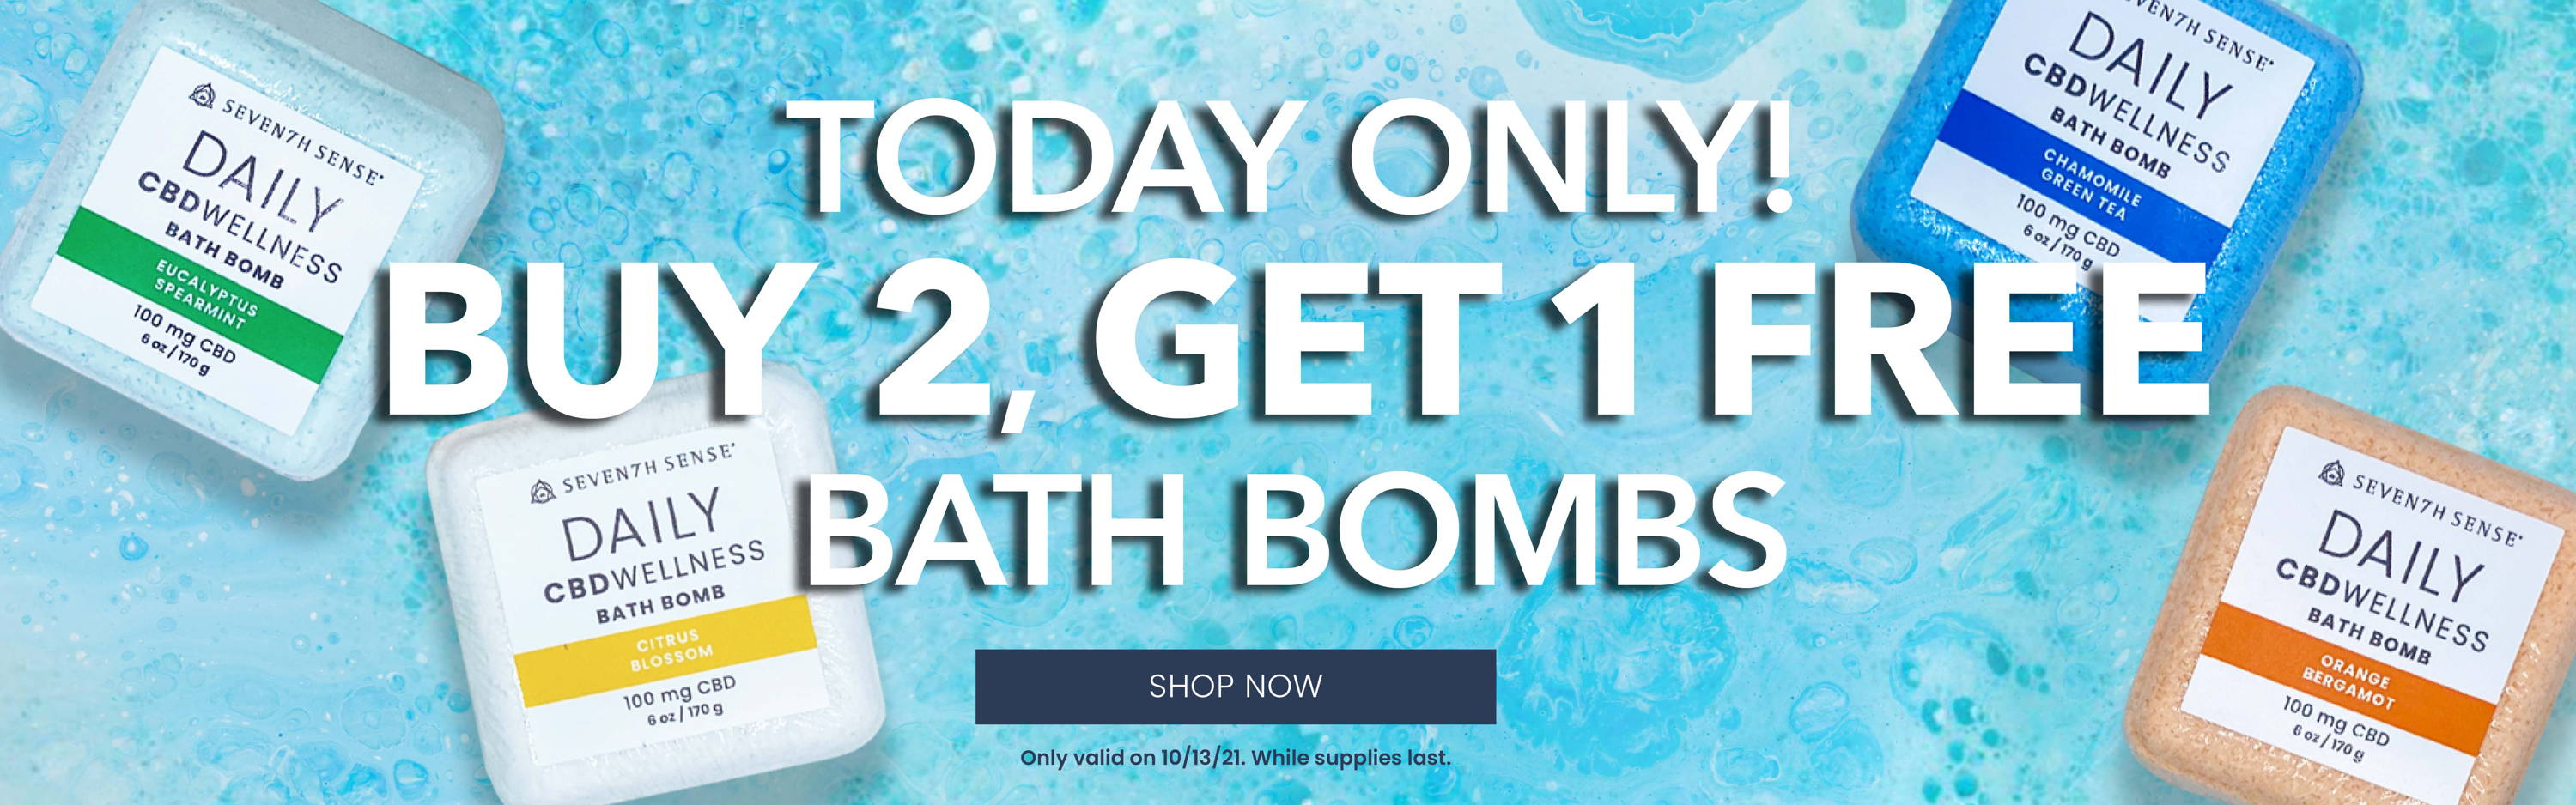 Today Only! Buy 2, Get 1 Free Bath Bombs